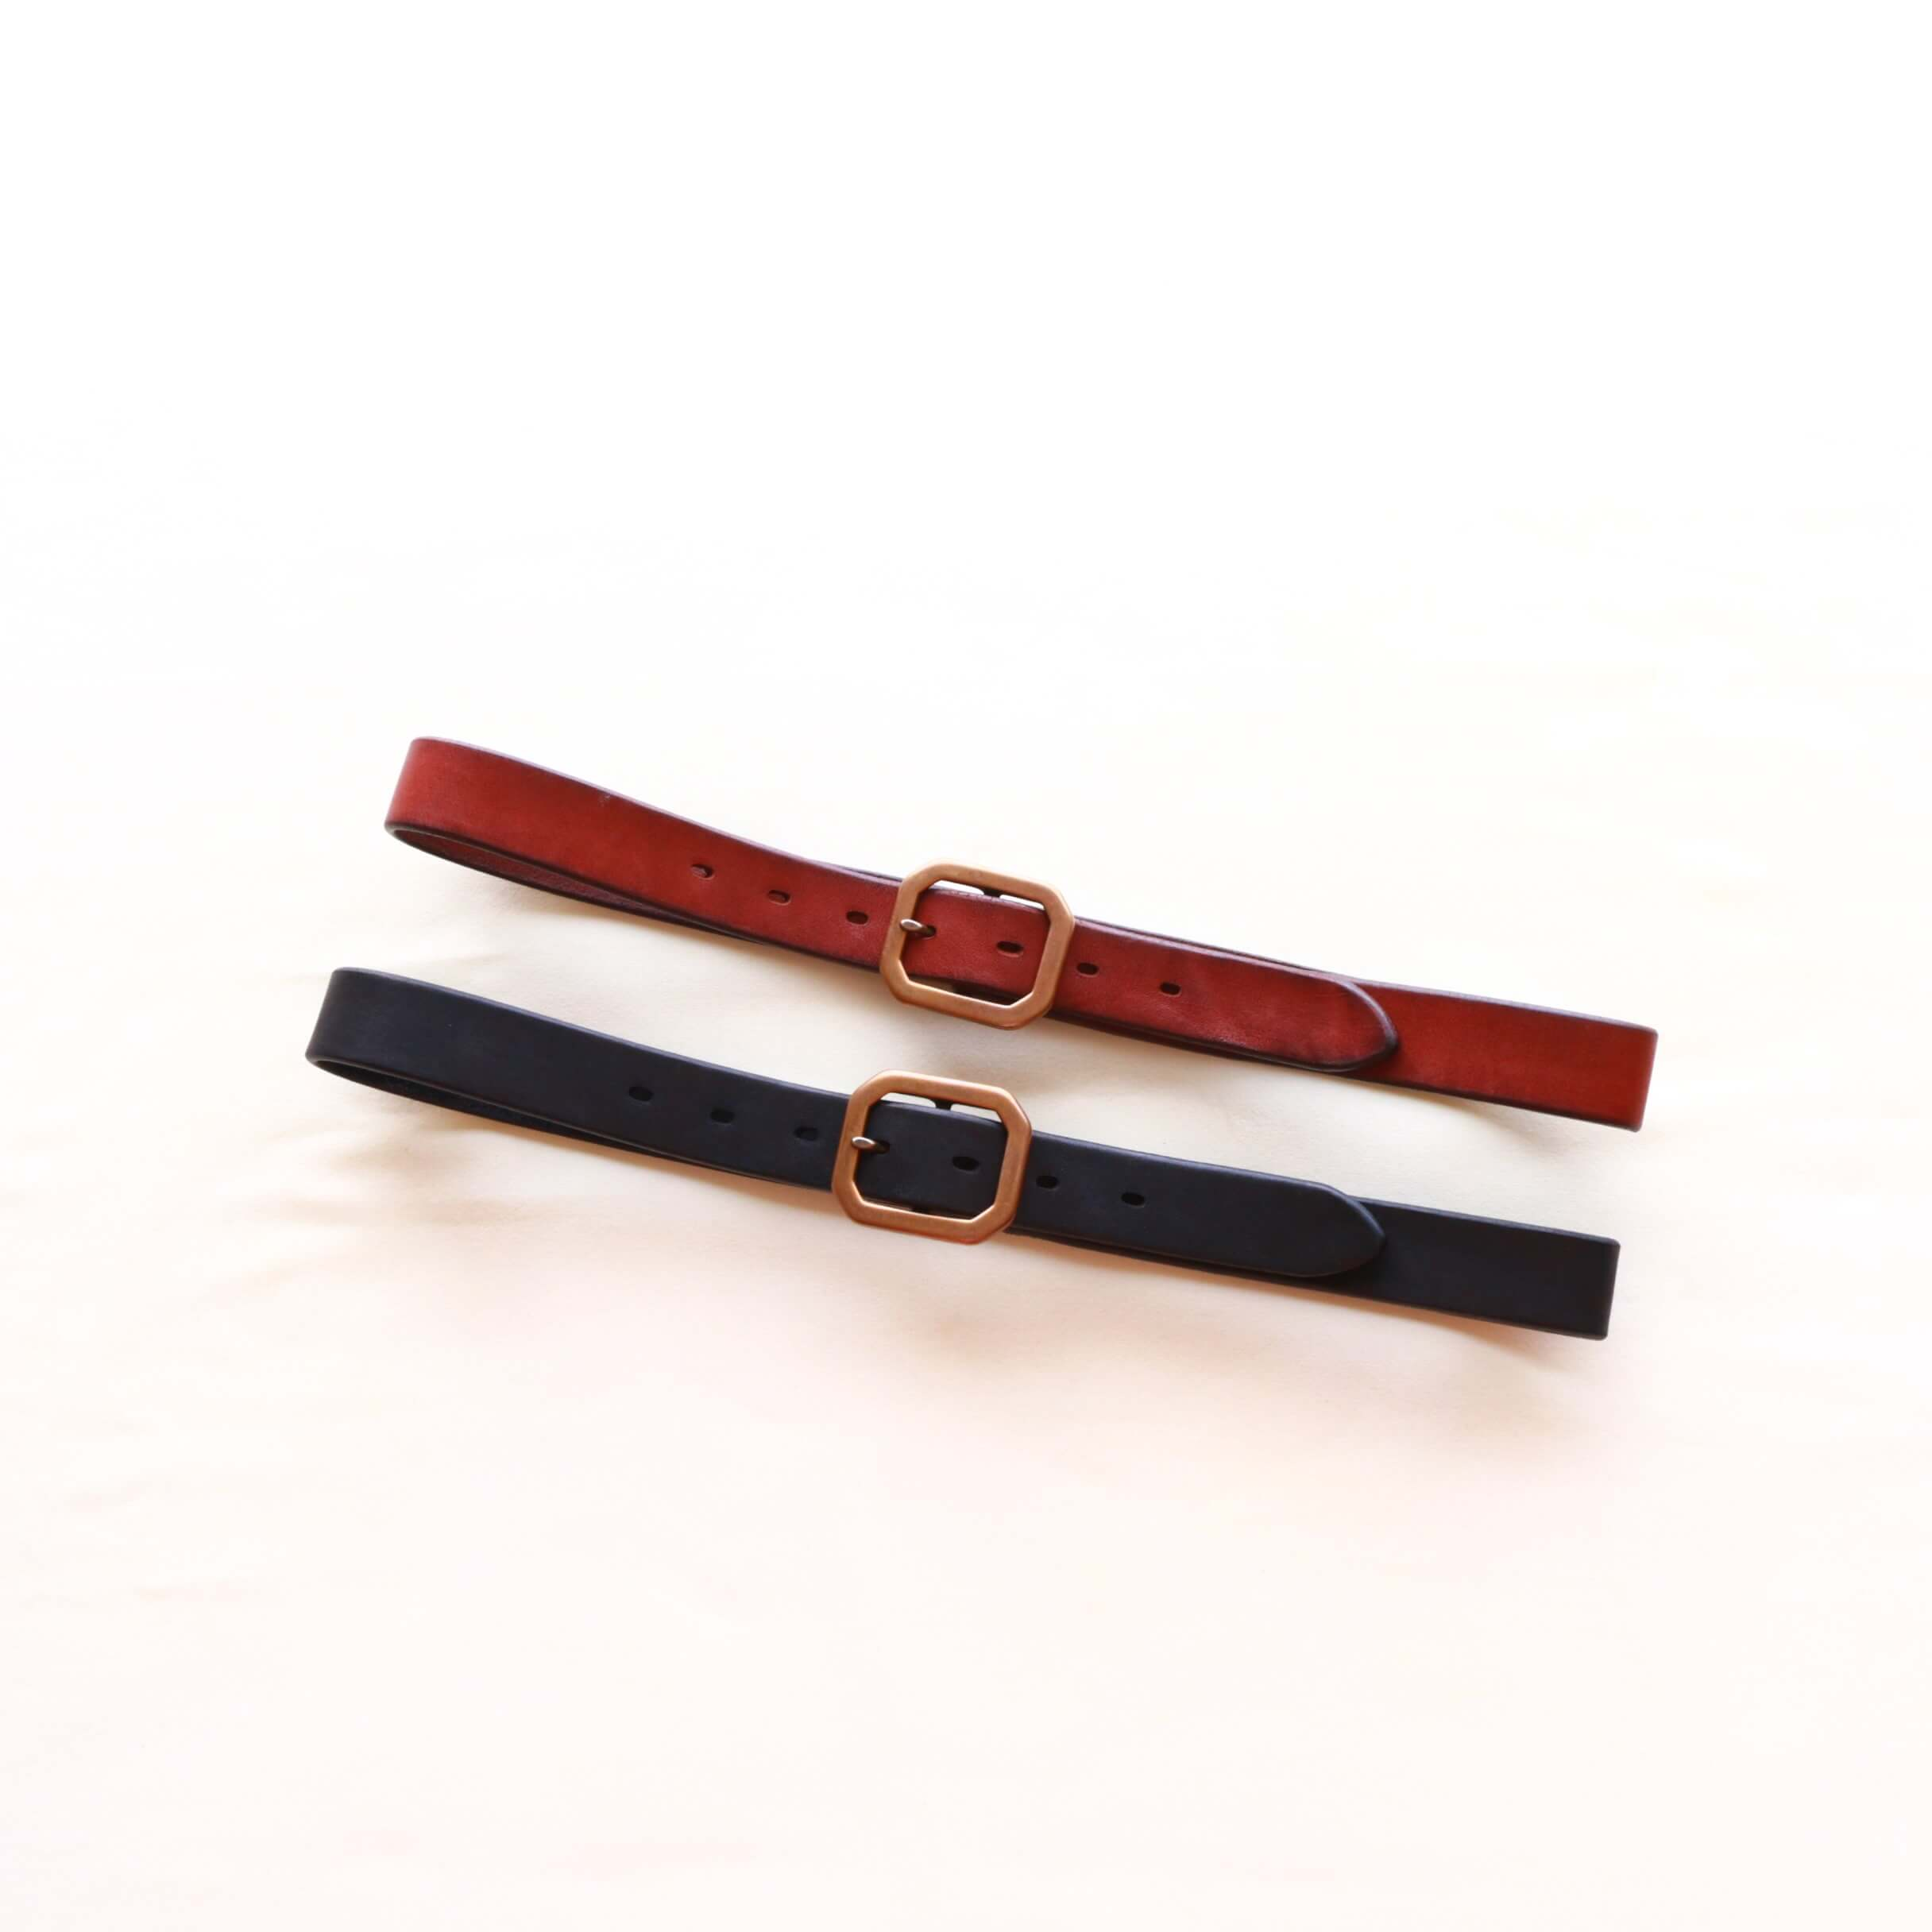 Vintage Works ヴィンテージワークス Leather belt 7Hole レザーベルト 7ホール DH5726